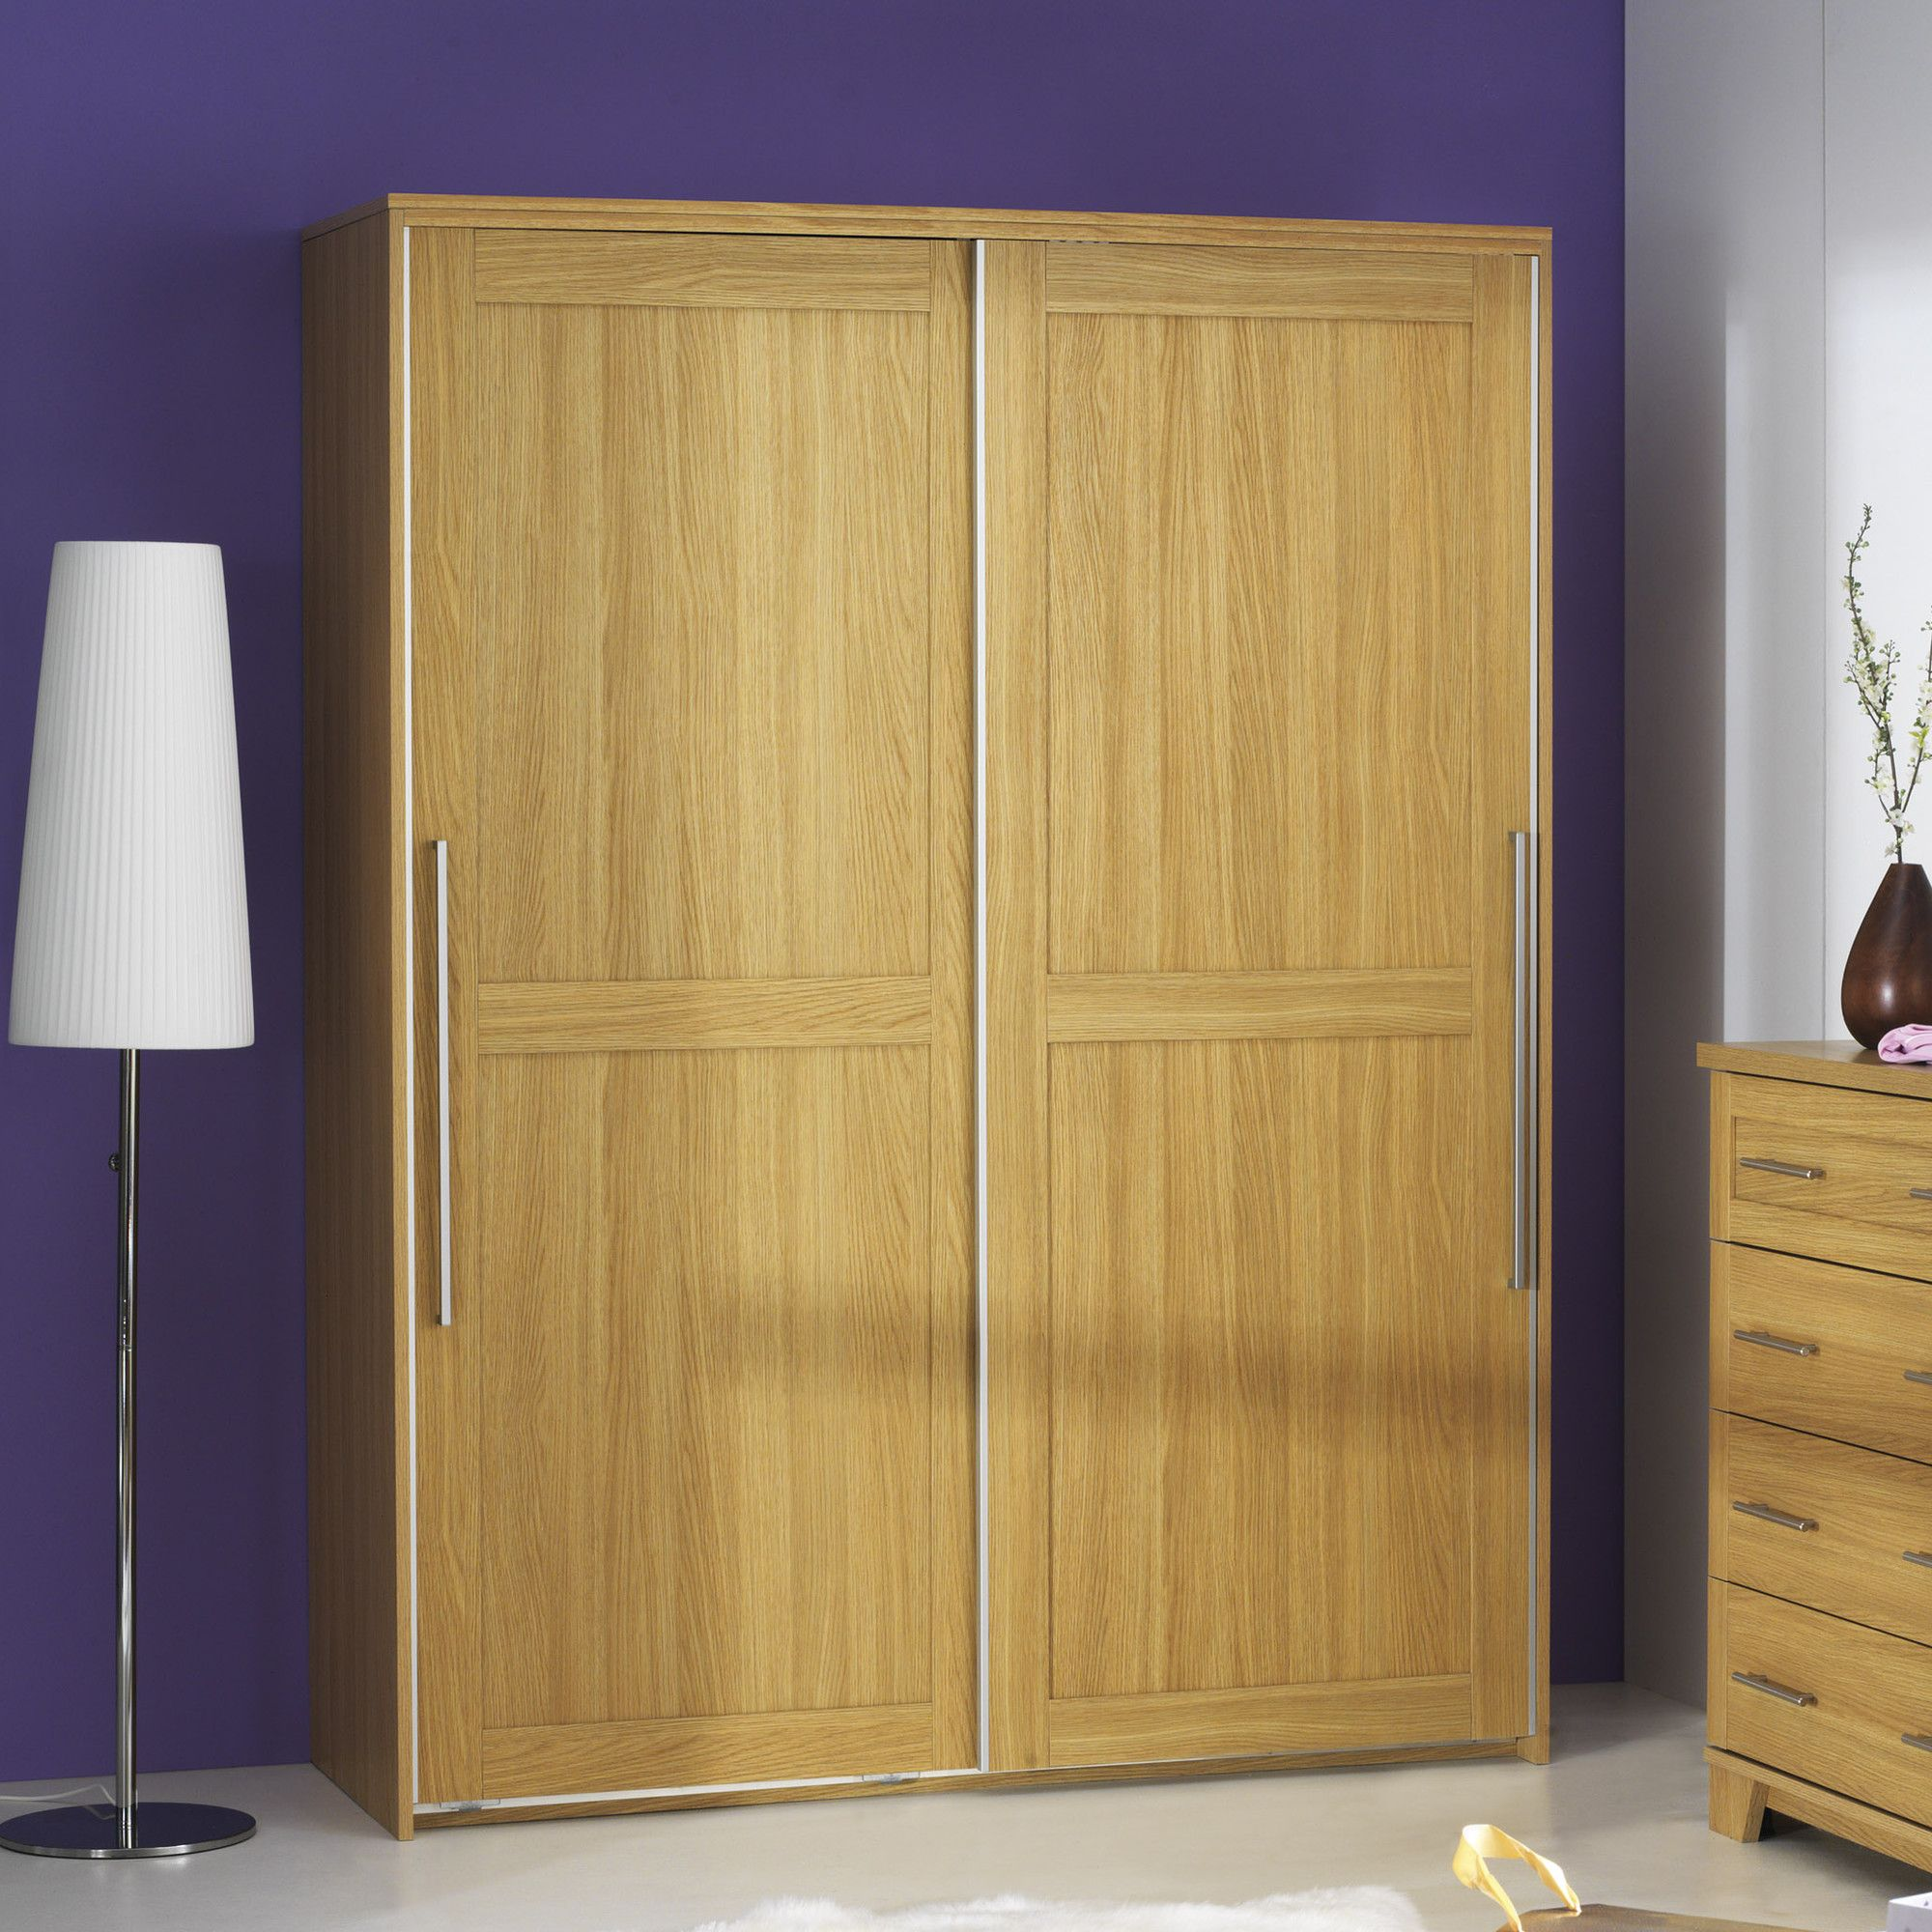 Caxton Melody 2 Door Sliding Door Wardrobe in Natural Oak at Tesco Direct